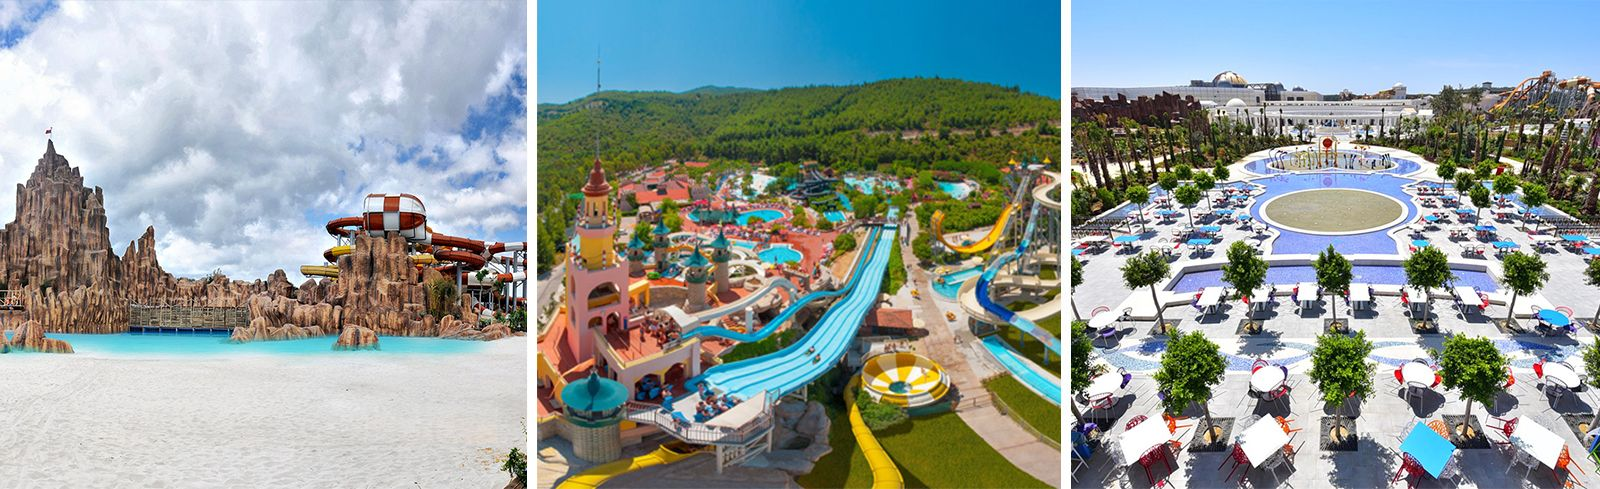 The Land of Legends Theme Park Belek